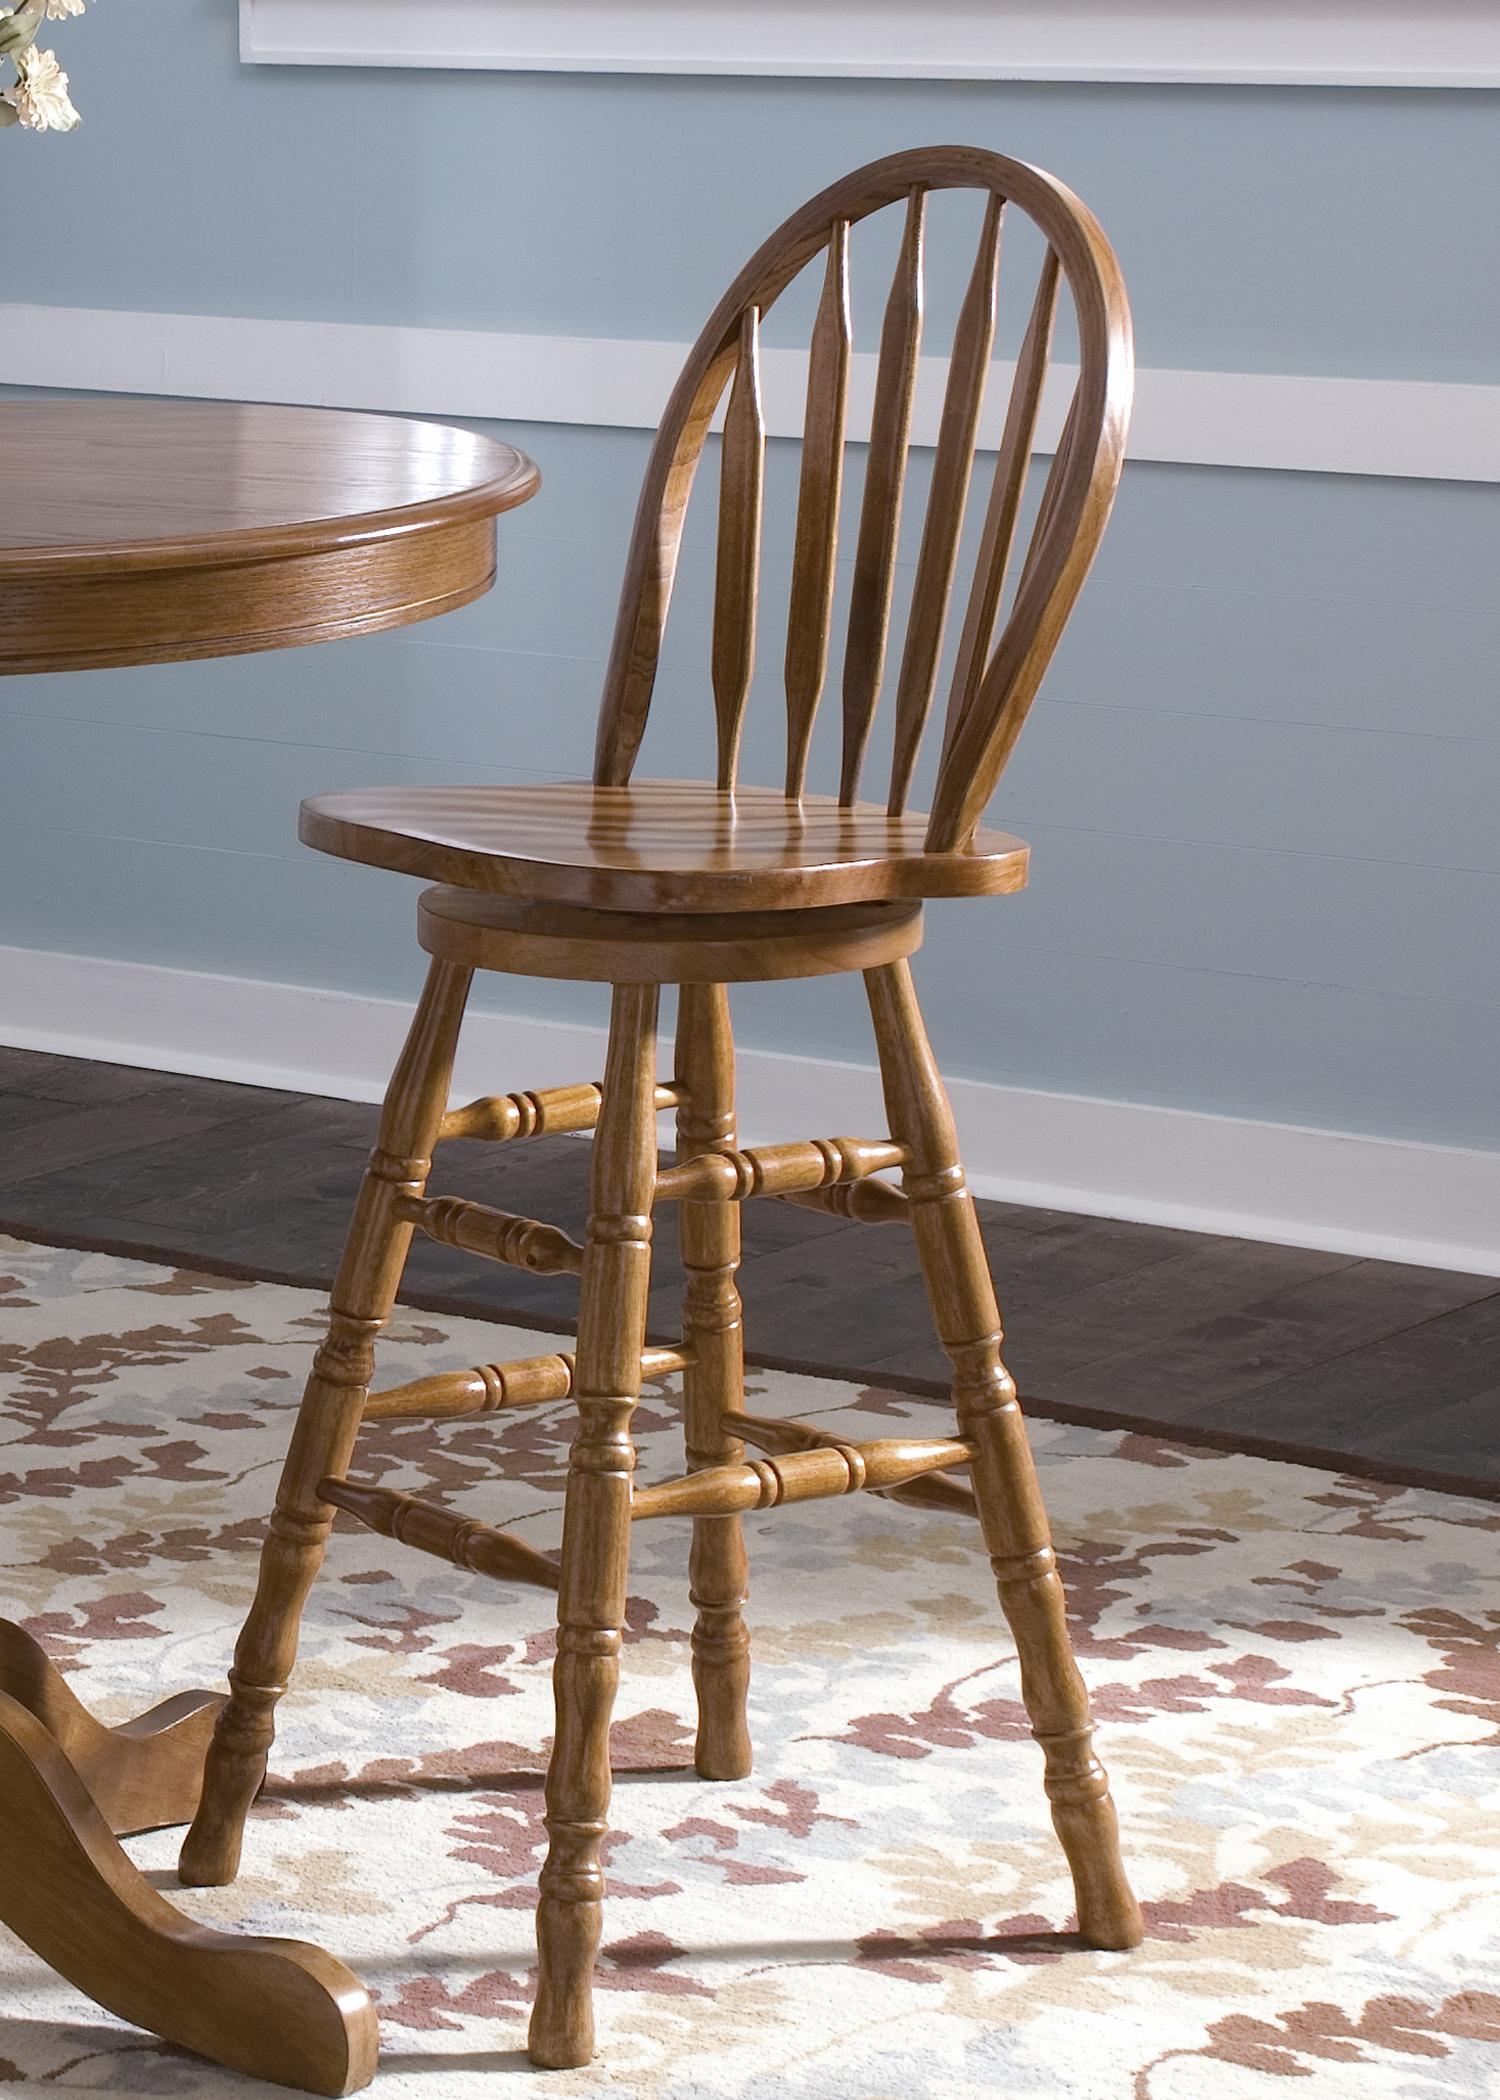 Liberty Furniture Nostalgia  30 Inch Barstool - Item Number: 10-B55330